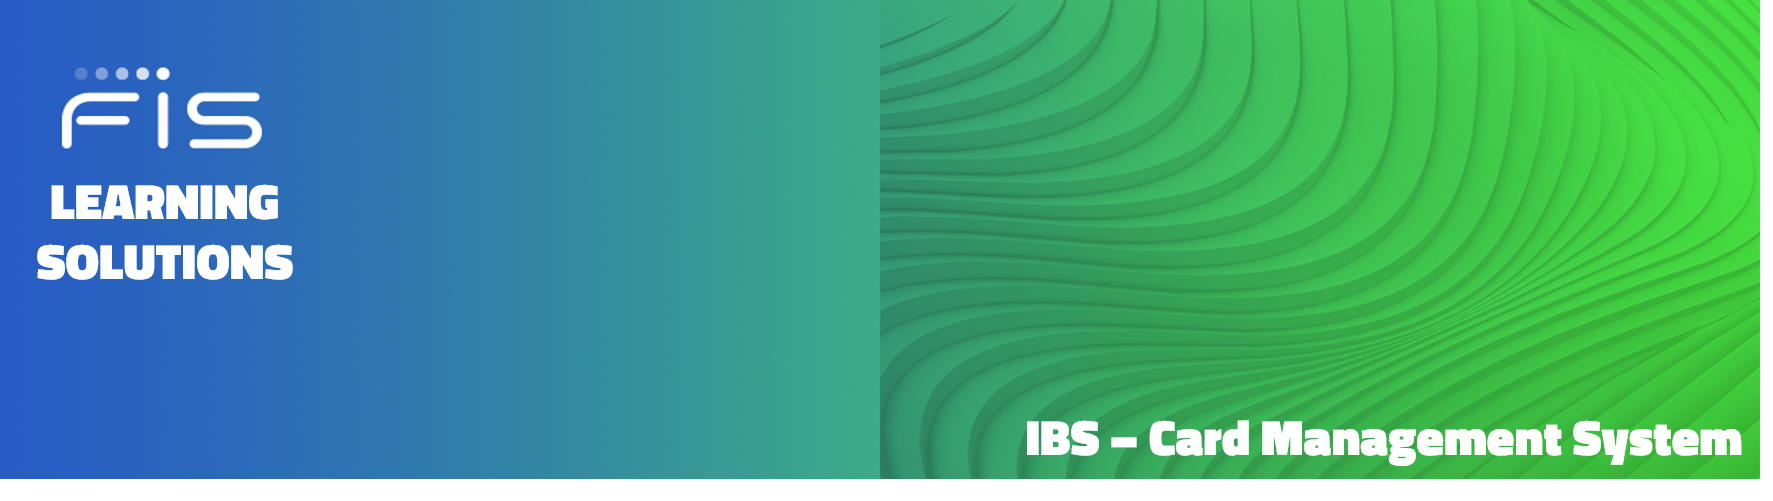 FIS Learning Solutions IBS Card Management